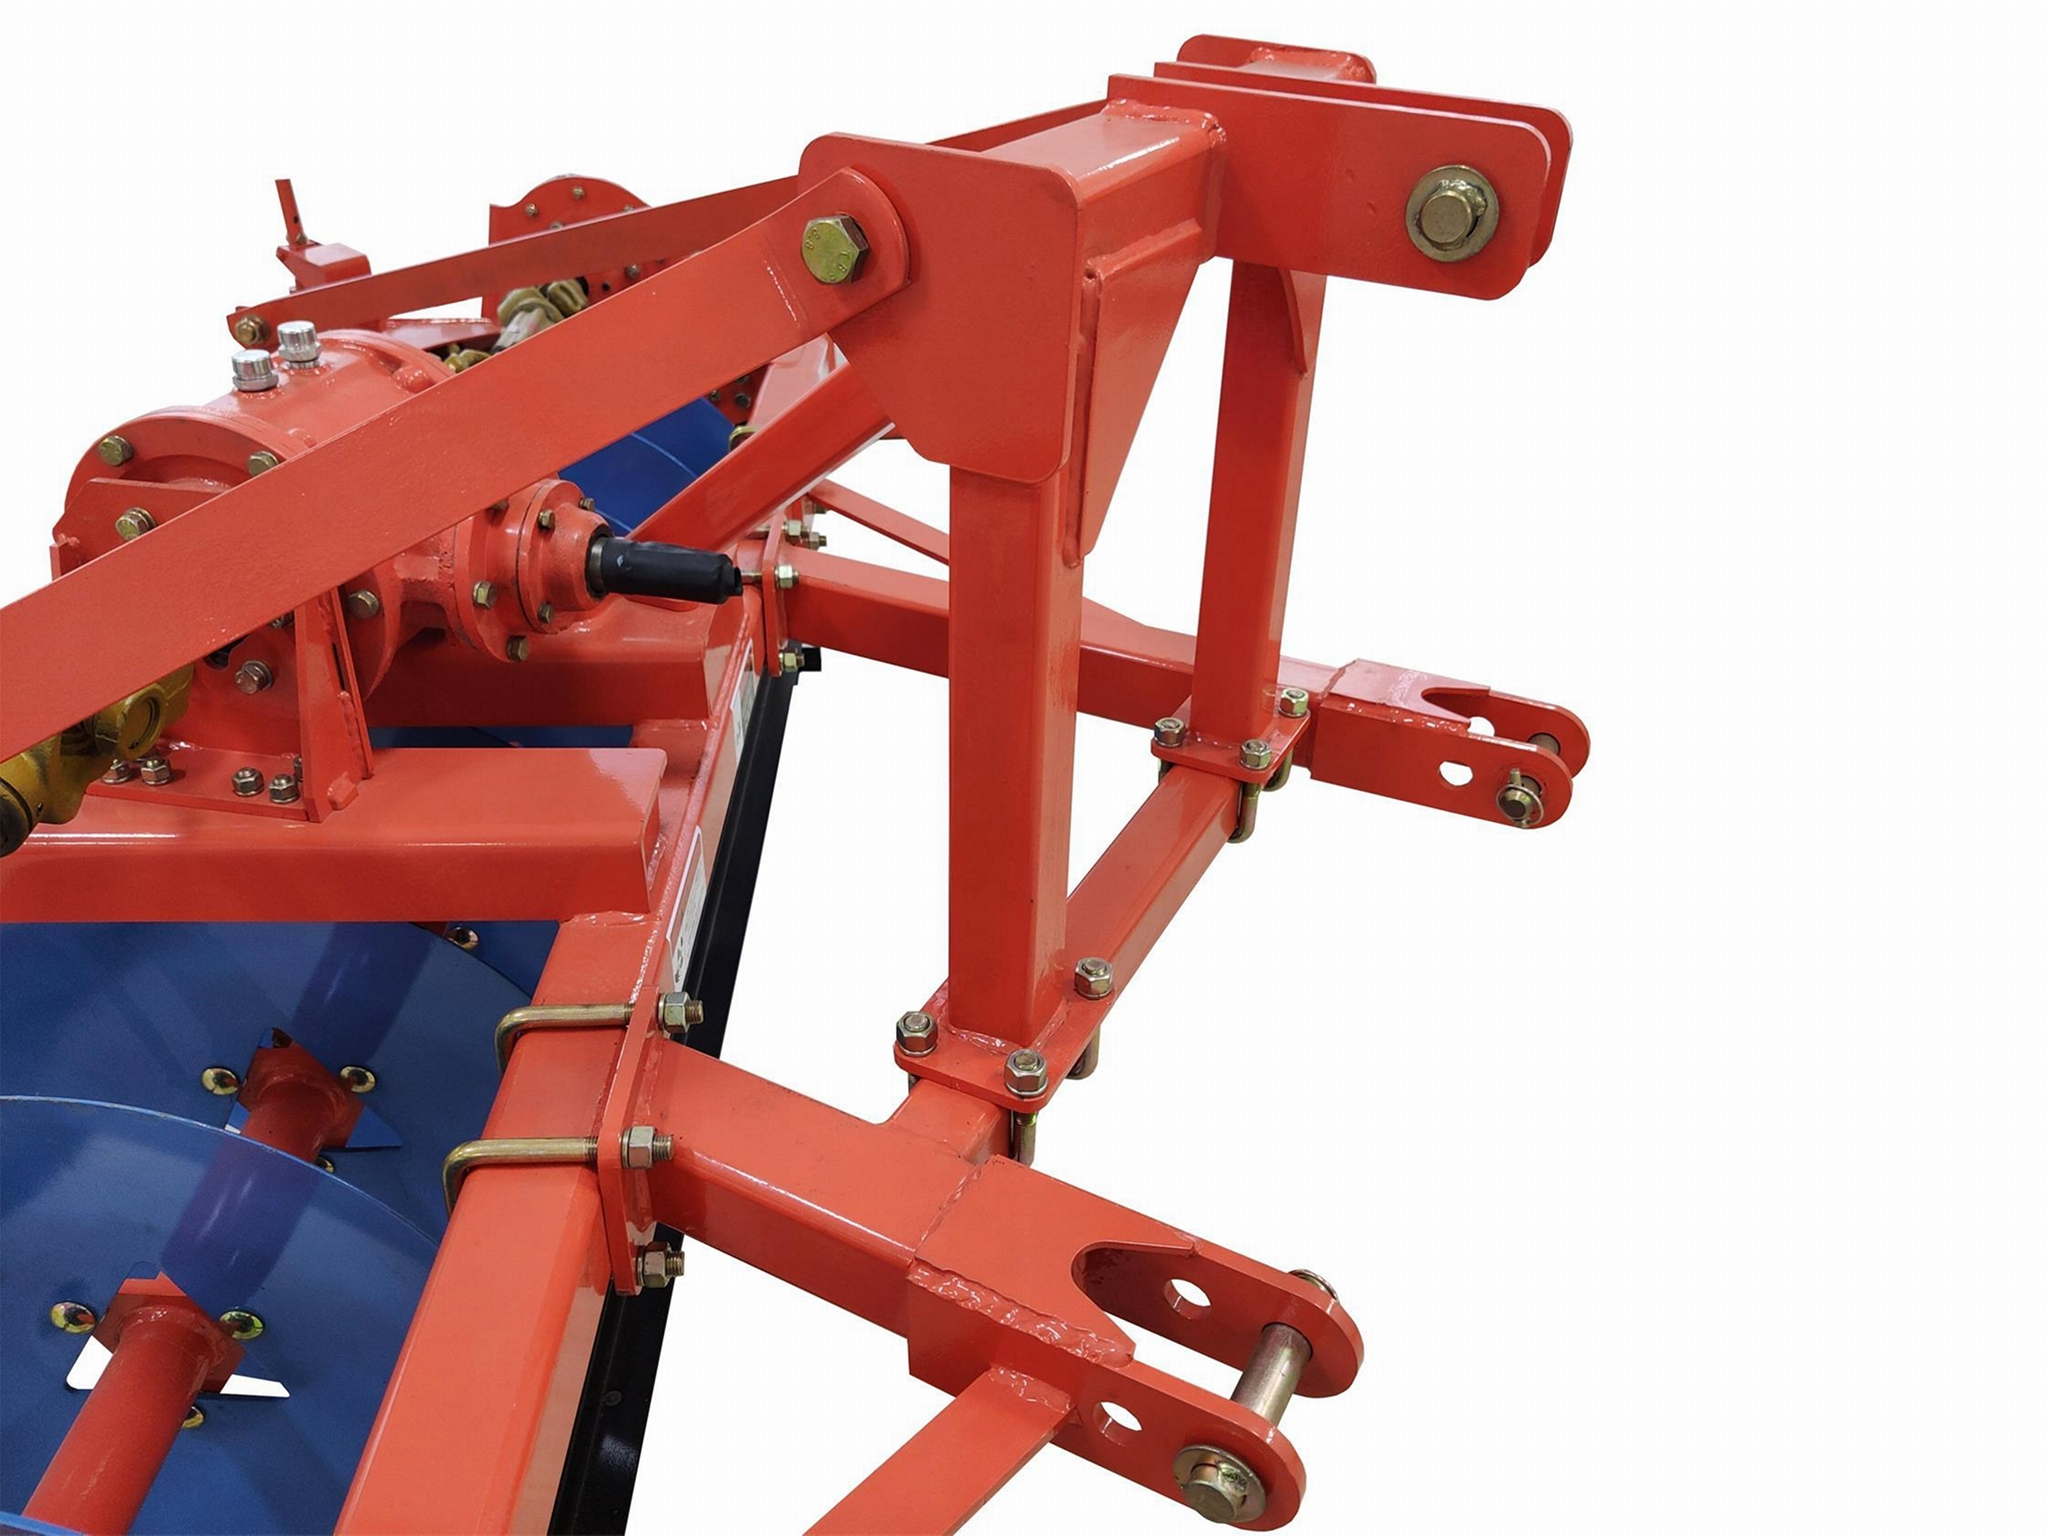 Tractor 3 point suspension structure system